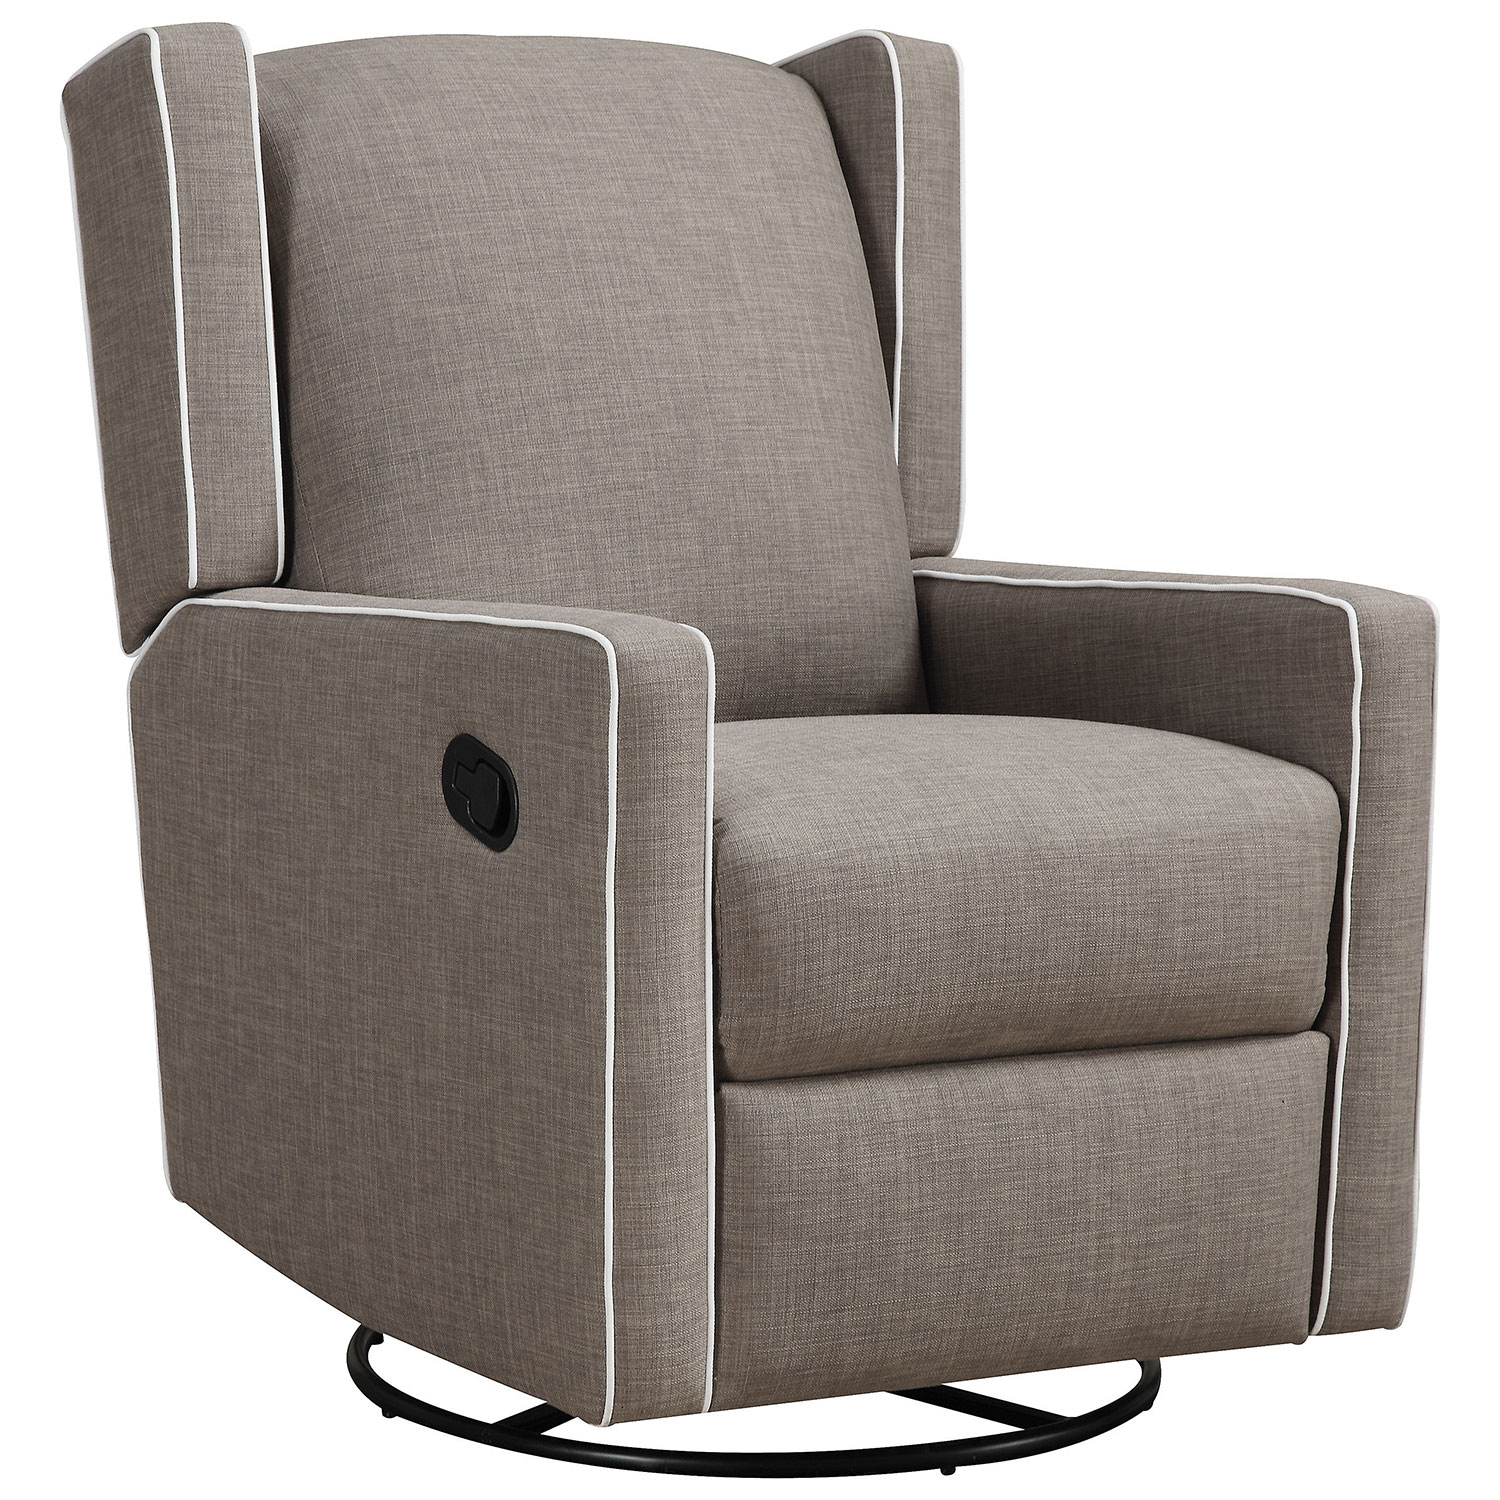 Mon Bebe Everston Swivel Glider Recliner - Taupe